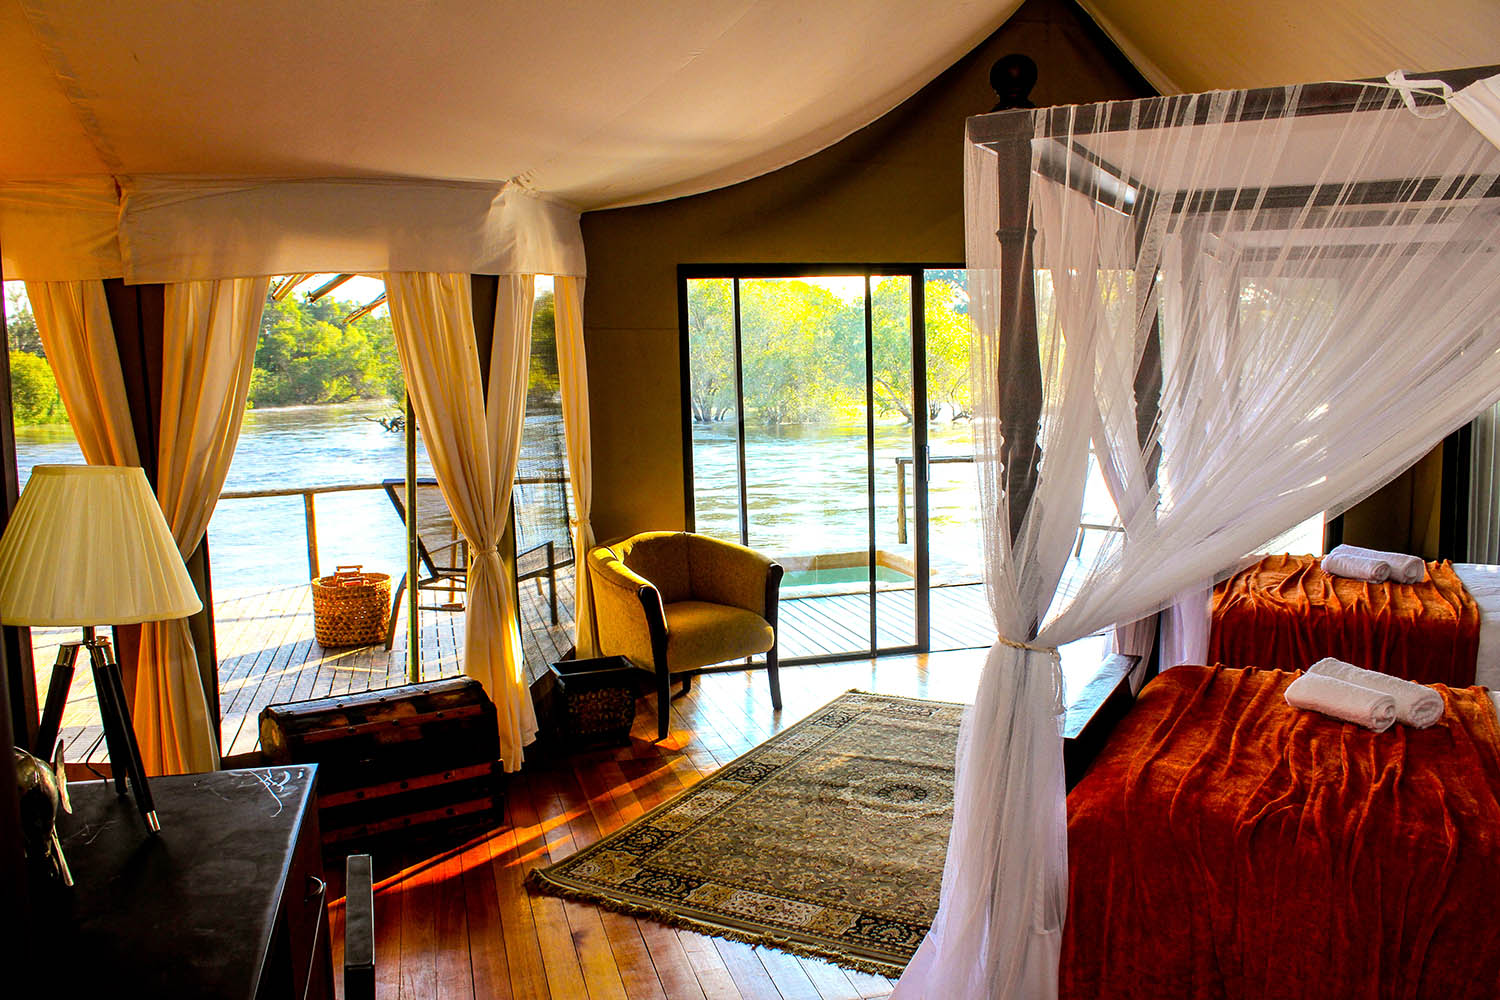 zambezi sands river camp victoria-falls-zimbabwe-accommodation-imvelo-safari-lodges-bed